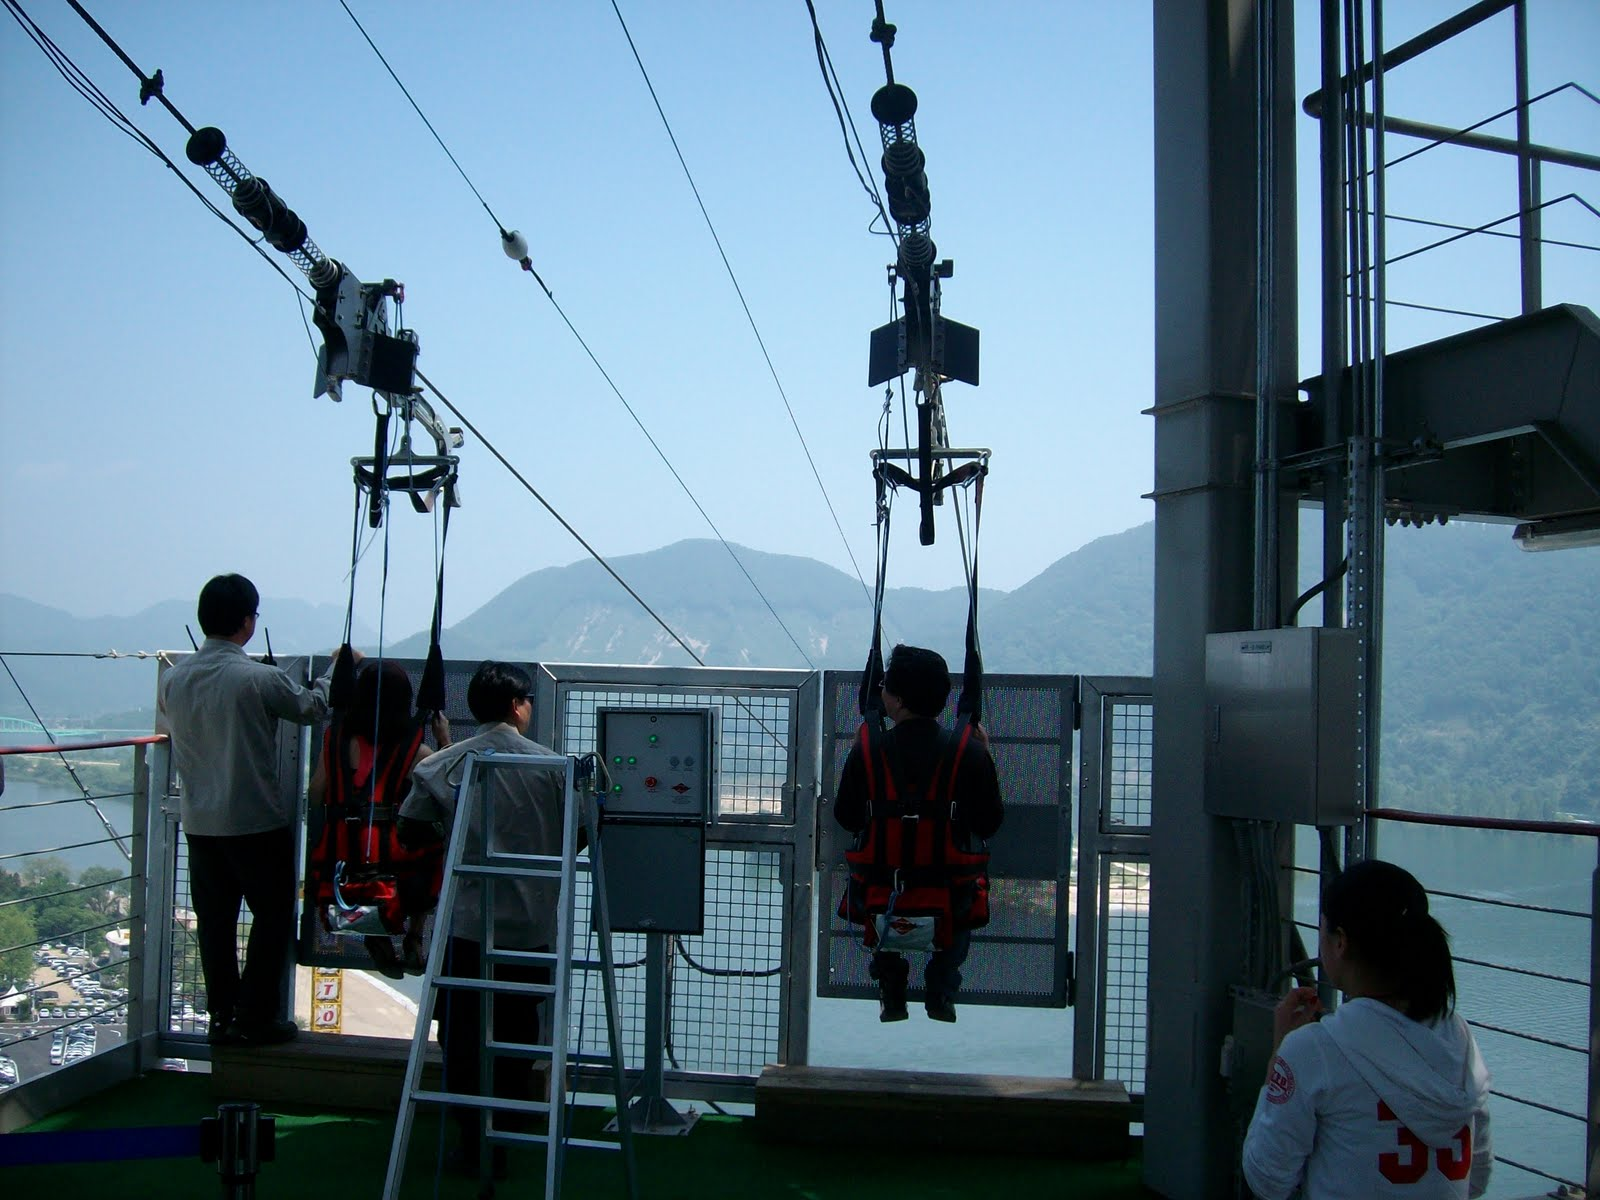 Bling Bling and Traveling: Zip Line to Nami Island